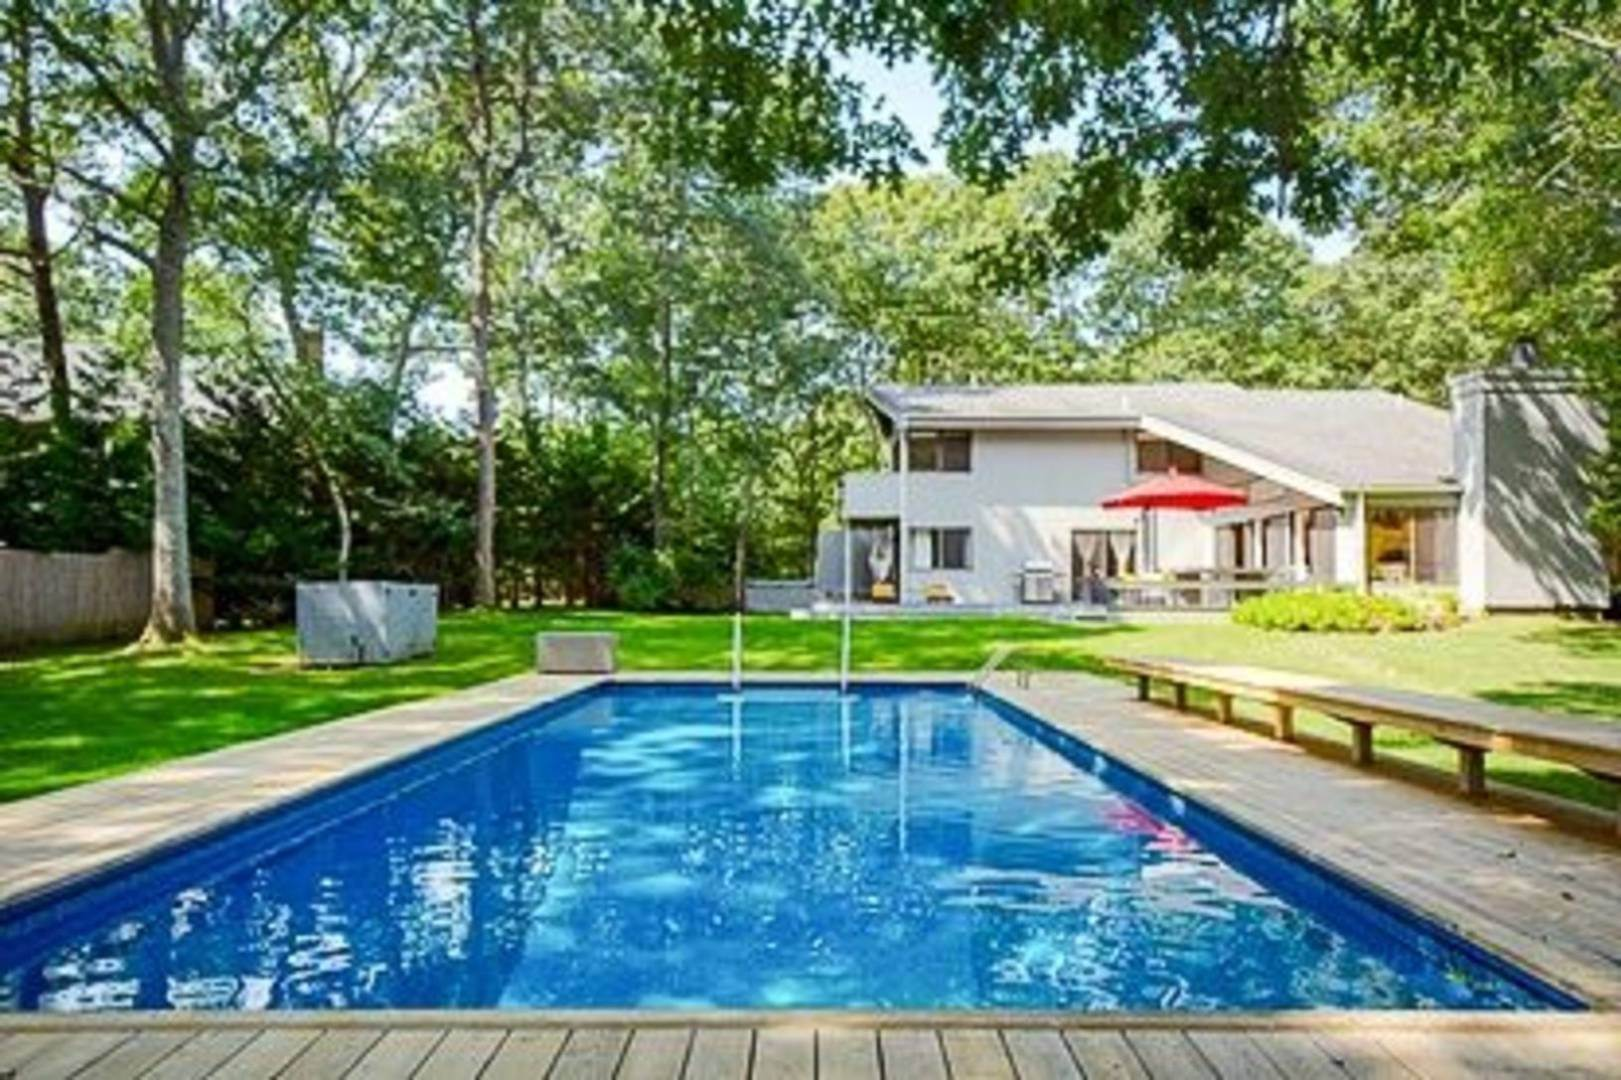 Single Family Home at Close To Village East Hampton, NY 11937